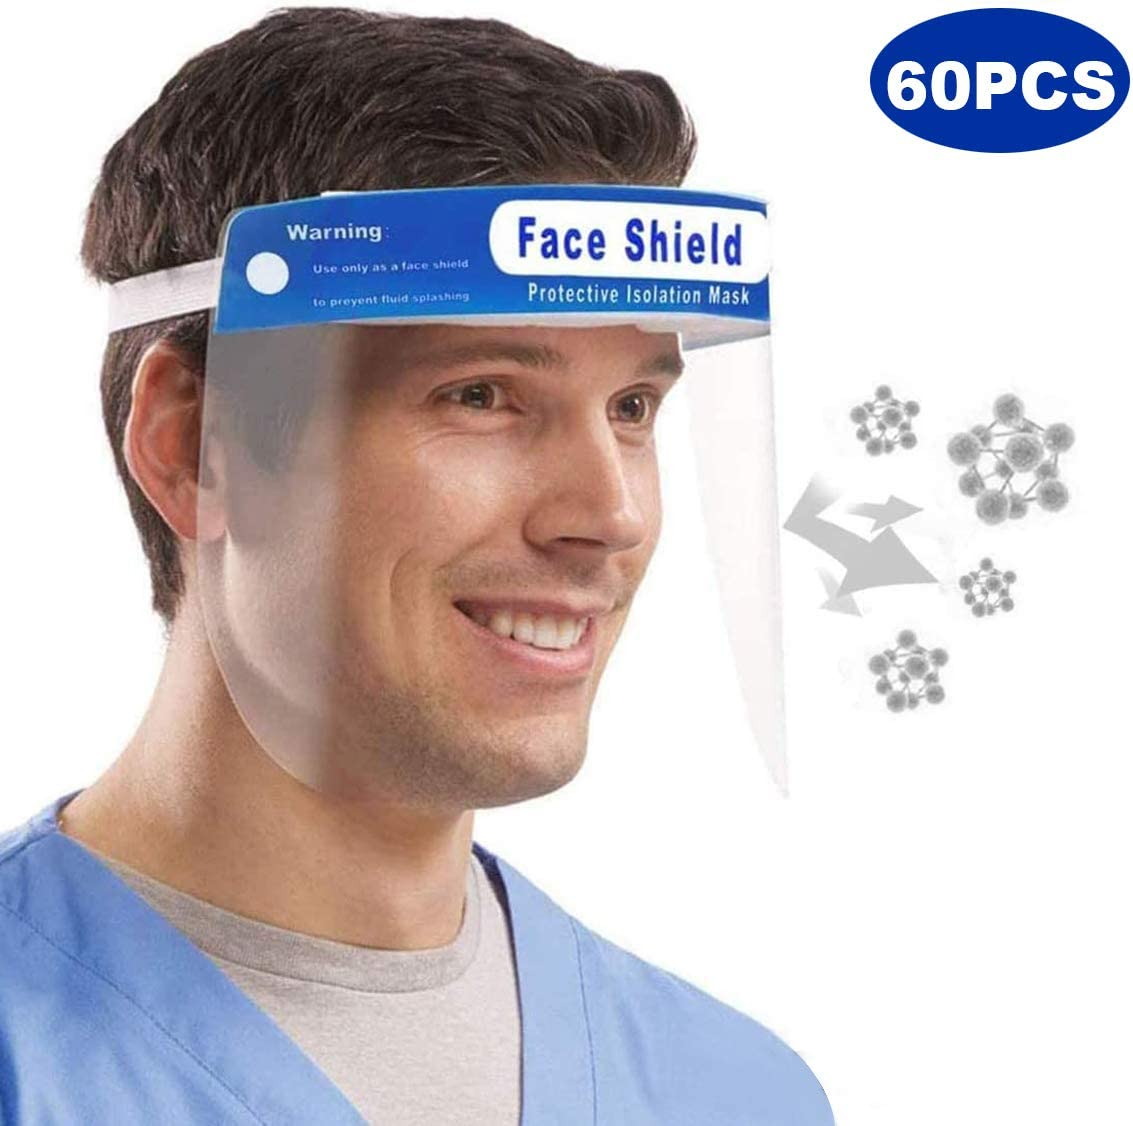 12PCS Safety Face Shield Reusable,Full Face Transparent Breathable Visor Dustproof Windproof Hat Shield Protect Eyes And Face With Protective Clear Film Elastic Band